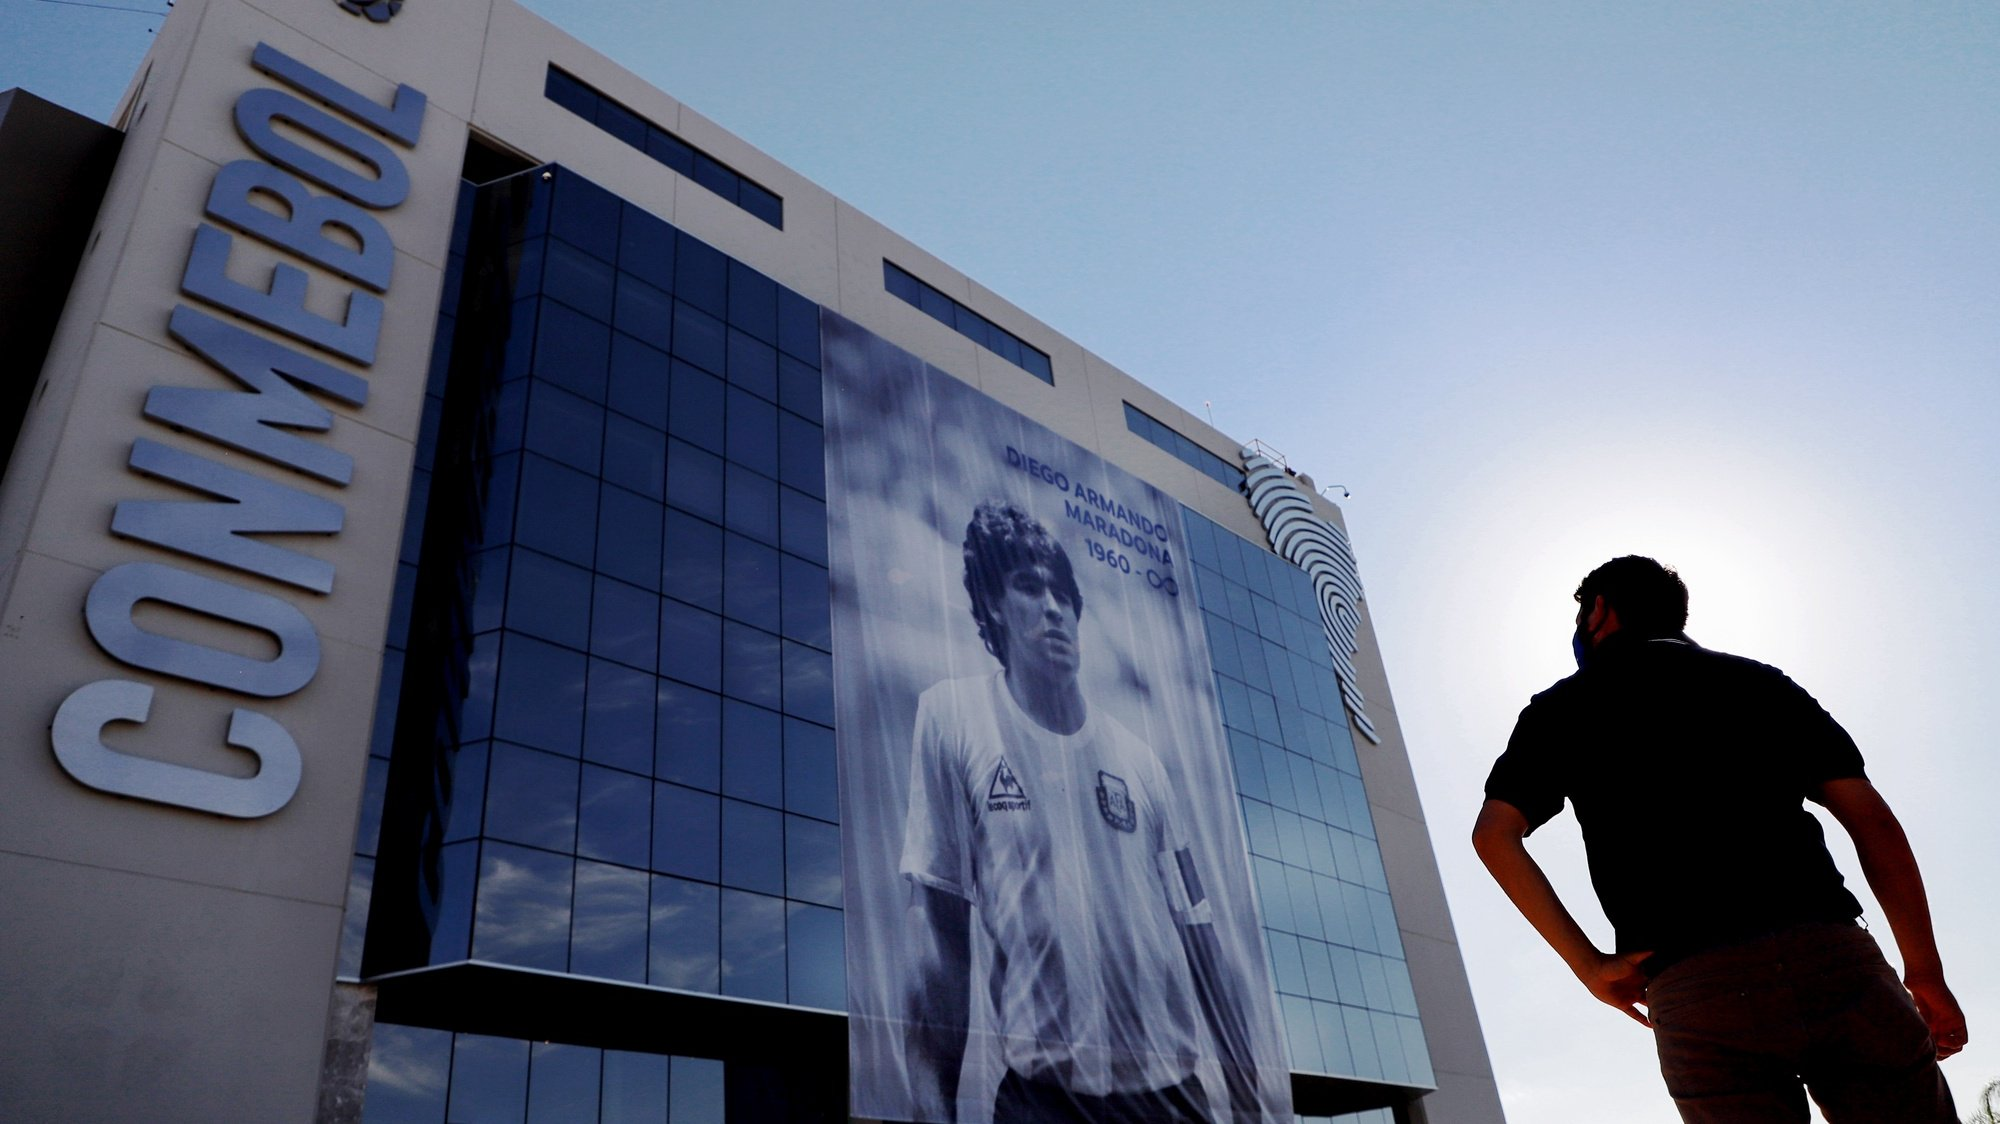 epaselect epa08847393 A man observes a giant banner with a photograph of former Argentine soccer player Diego Armando Maradona, as a tribute, on the facade of the South American Football Confederation (CONMEBOL) building, in Luque, Paraguay, 27 November 2020.  EPA/Nathalia Aguilar